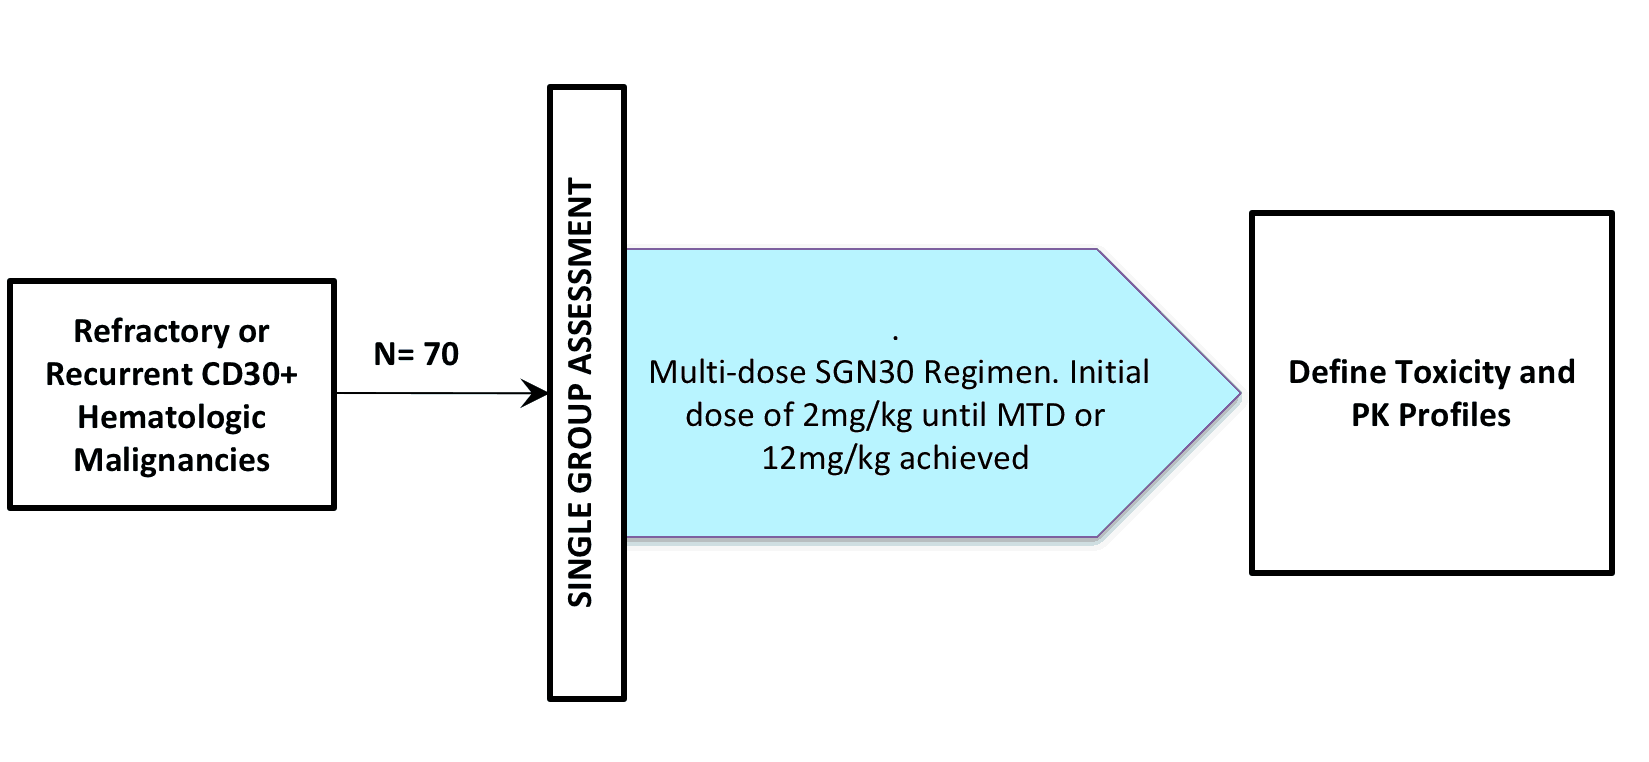 NCT00051597 (CLINICAL TRIAL / BRENTUXIMAB VEDOTIN / SGN-30 / ADCETRIS®)